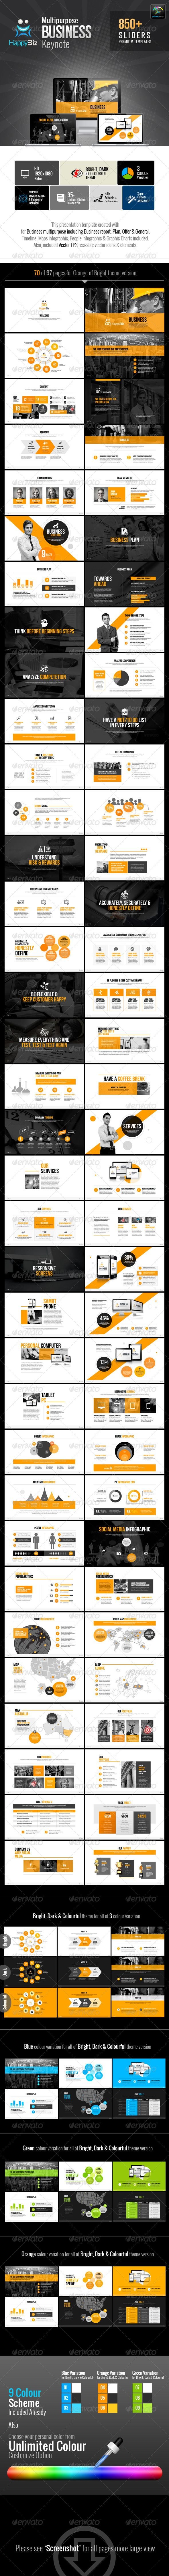 HappyBiz Multipurpose Keynote | Keynote theme / template